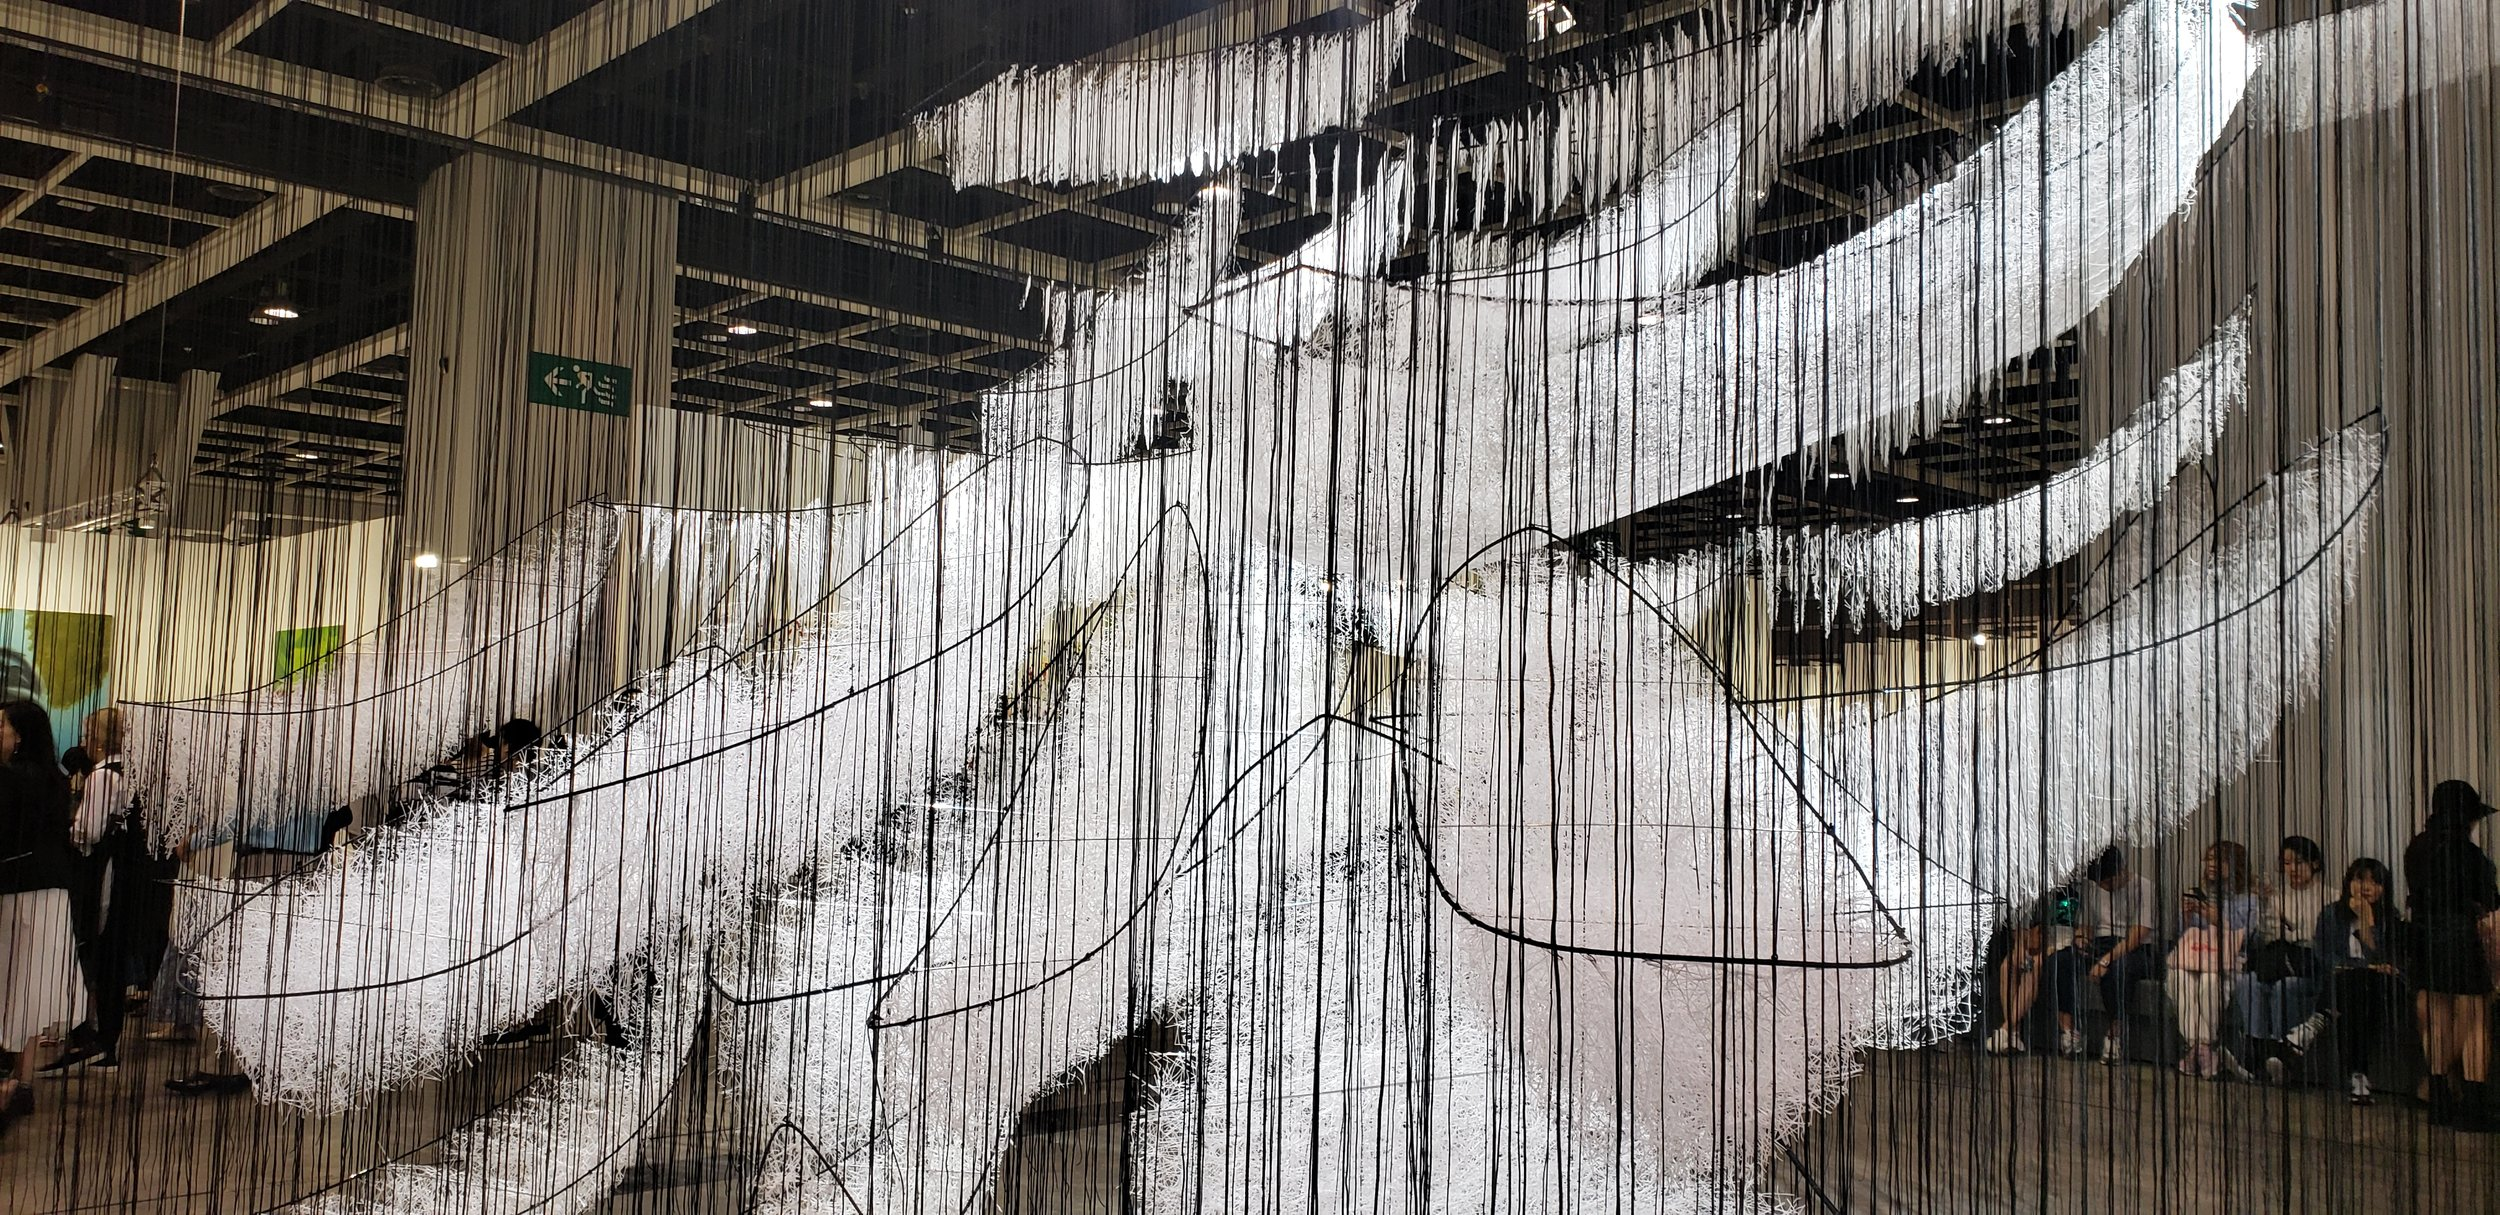 Where Are We Going , 2017-2018 by Chiharu Shioto.